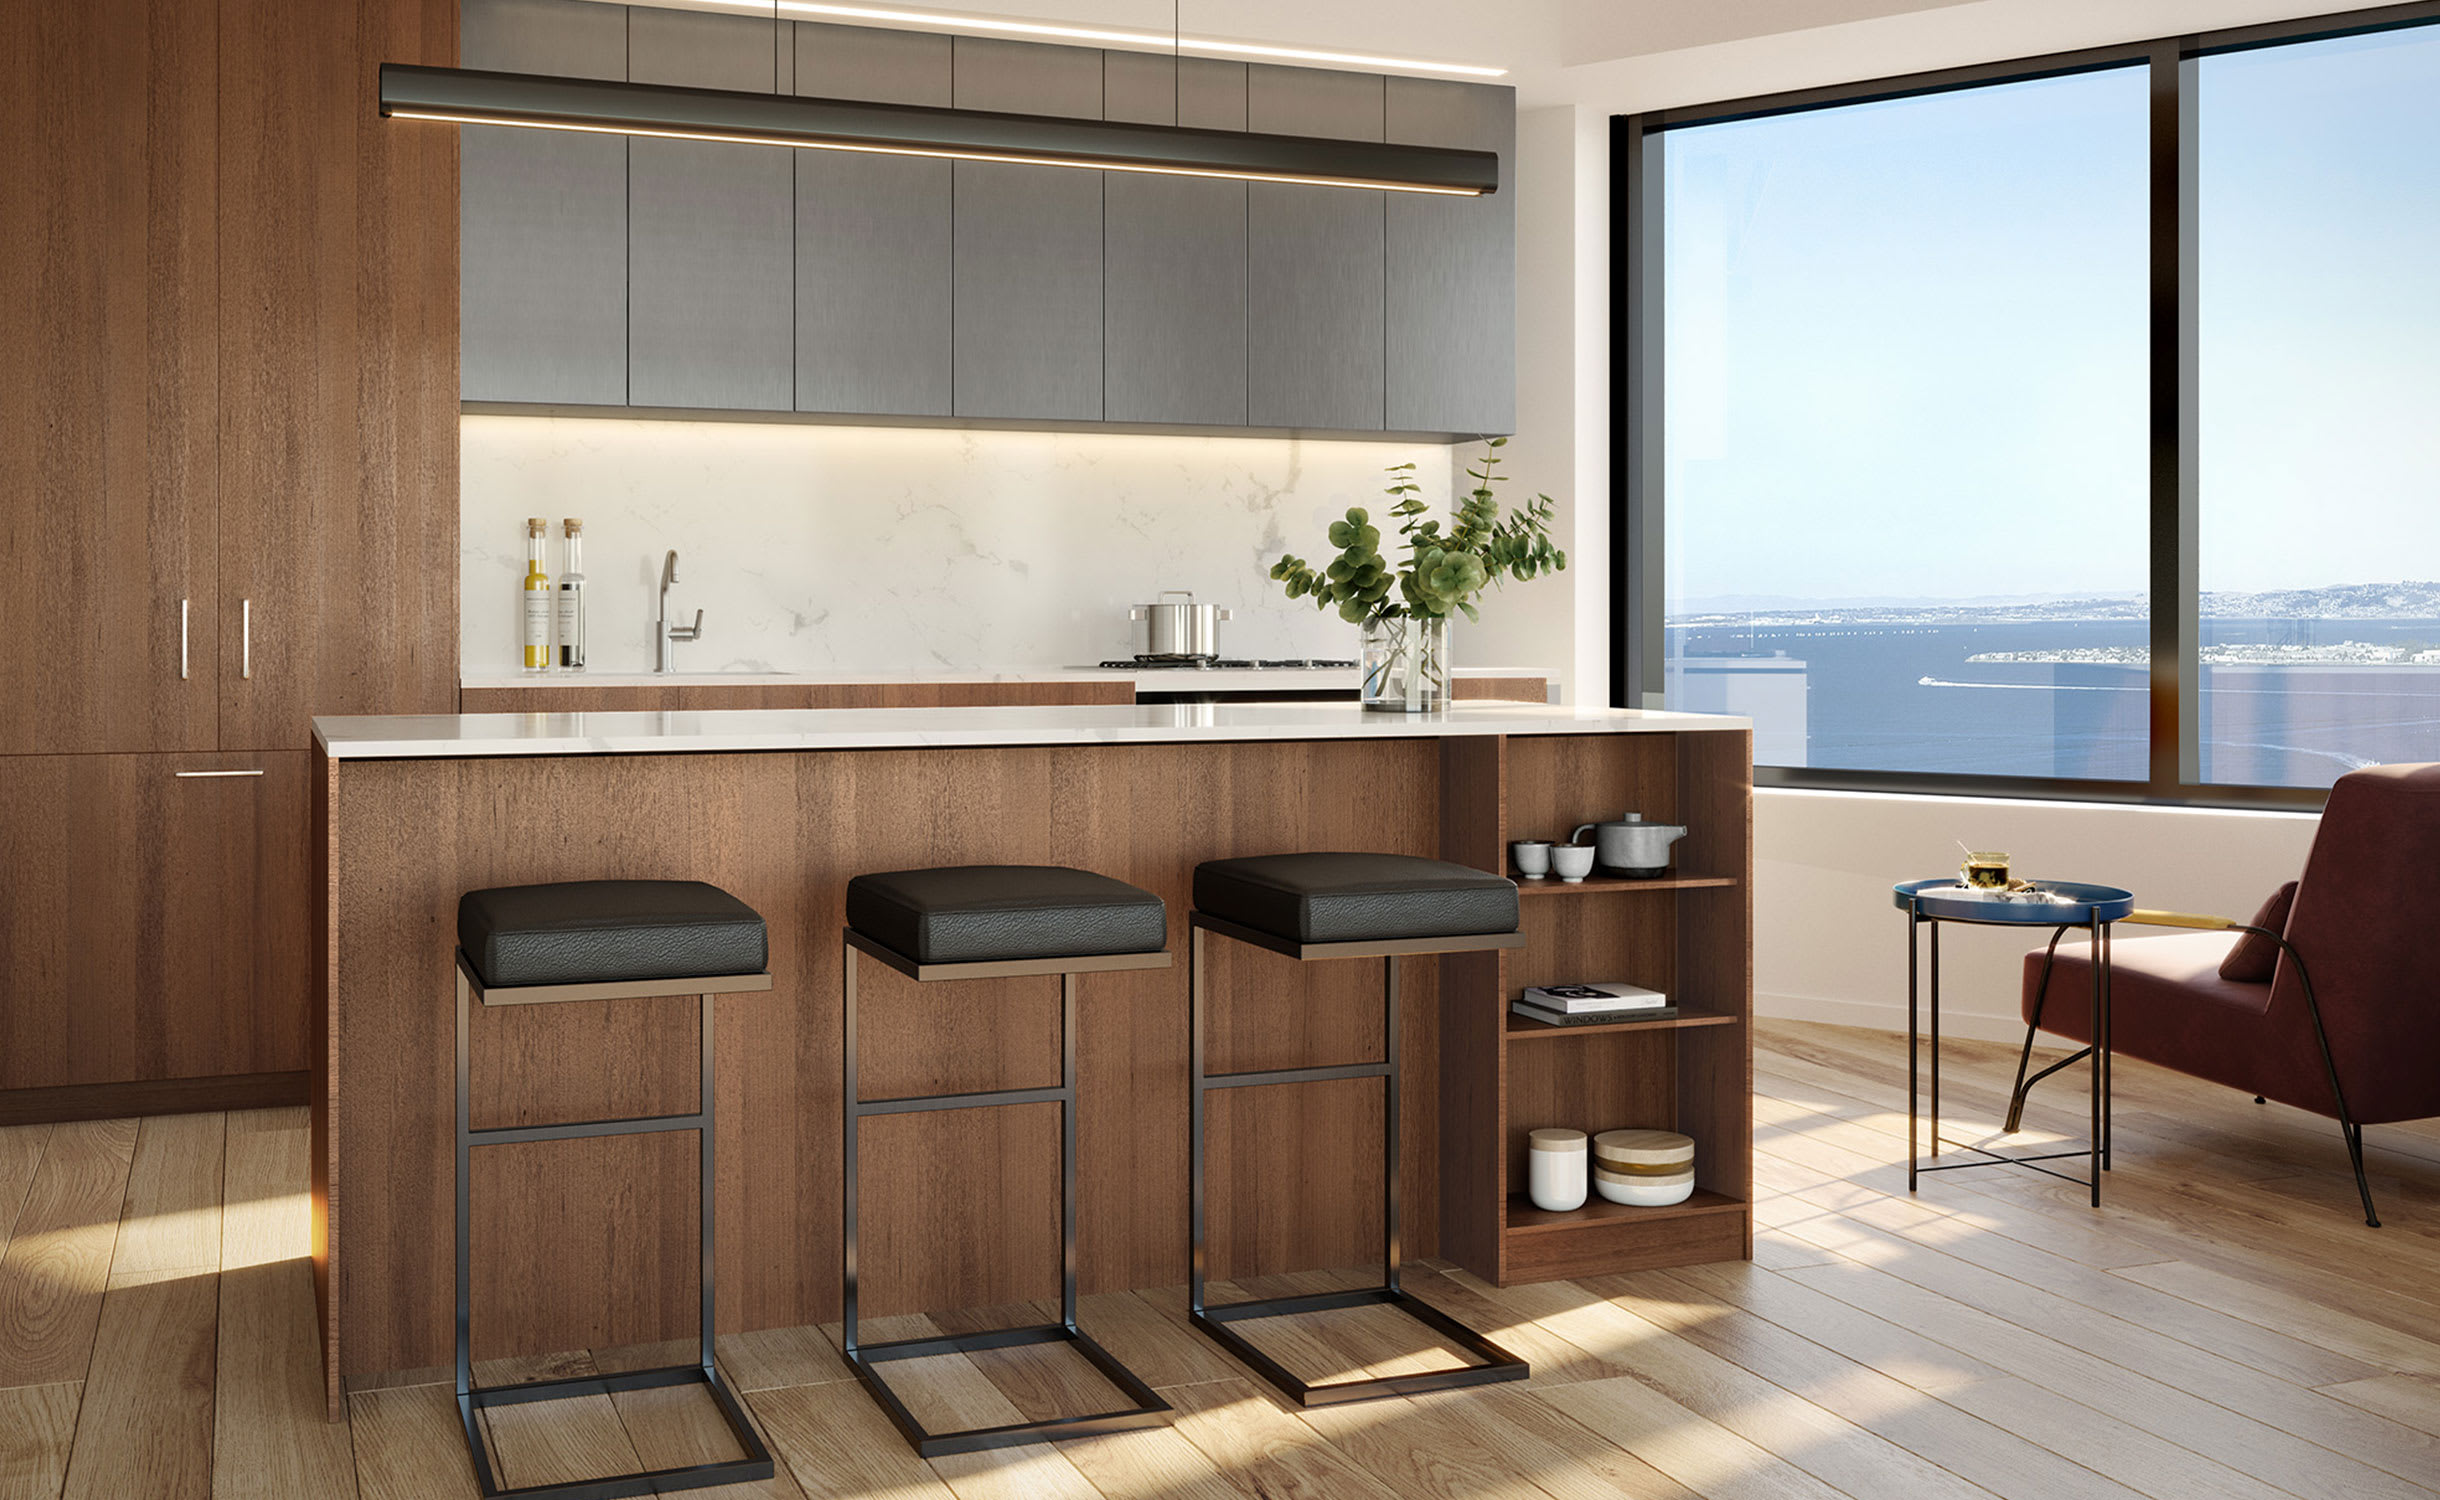 kitchen and view in residence at mira